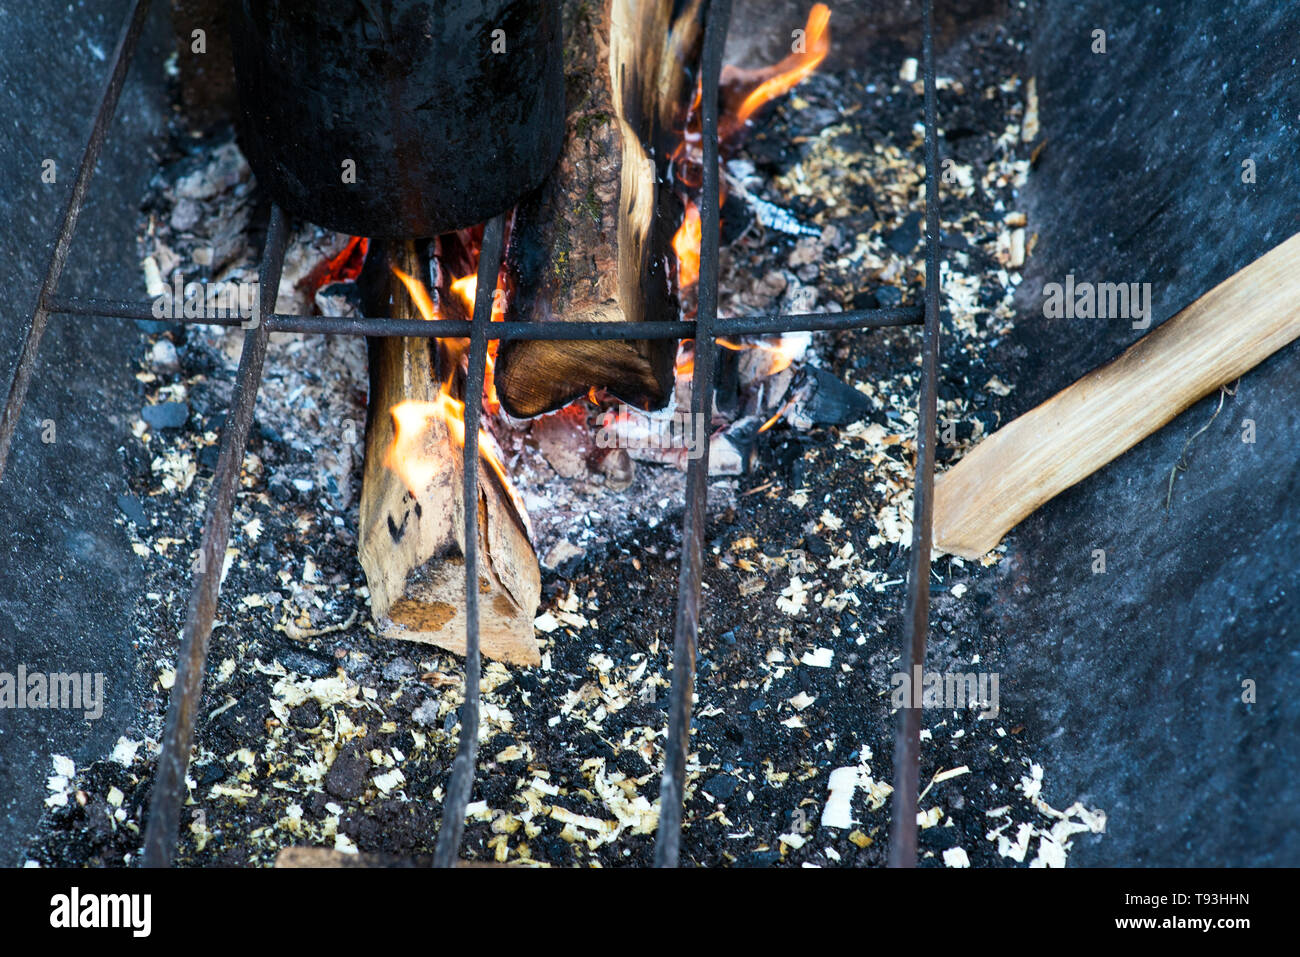 Cooking in sooty cauldron on campfire at forest - Stock Image